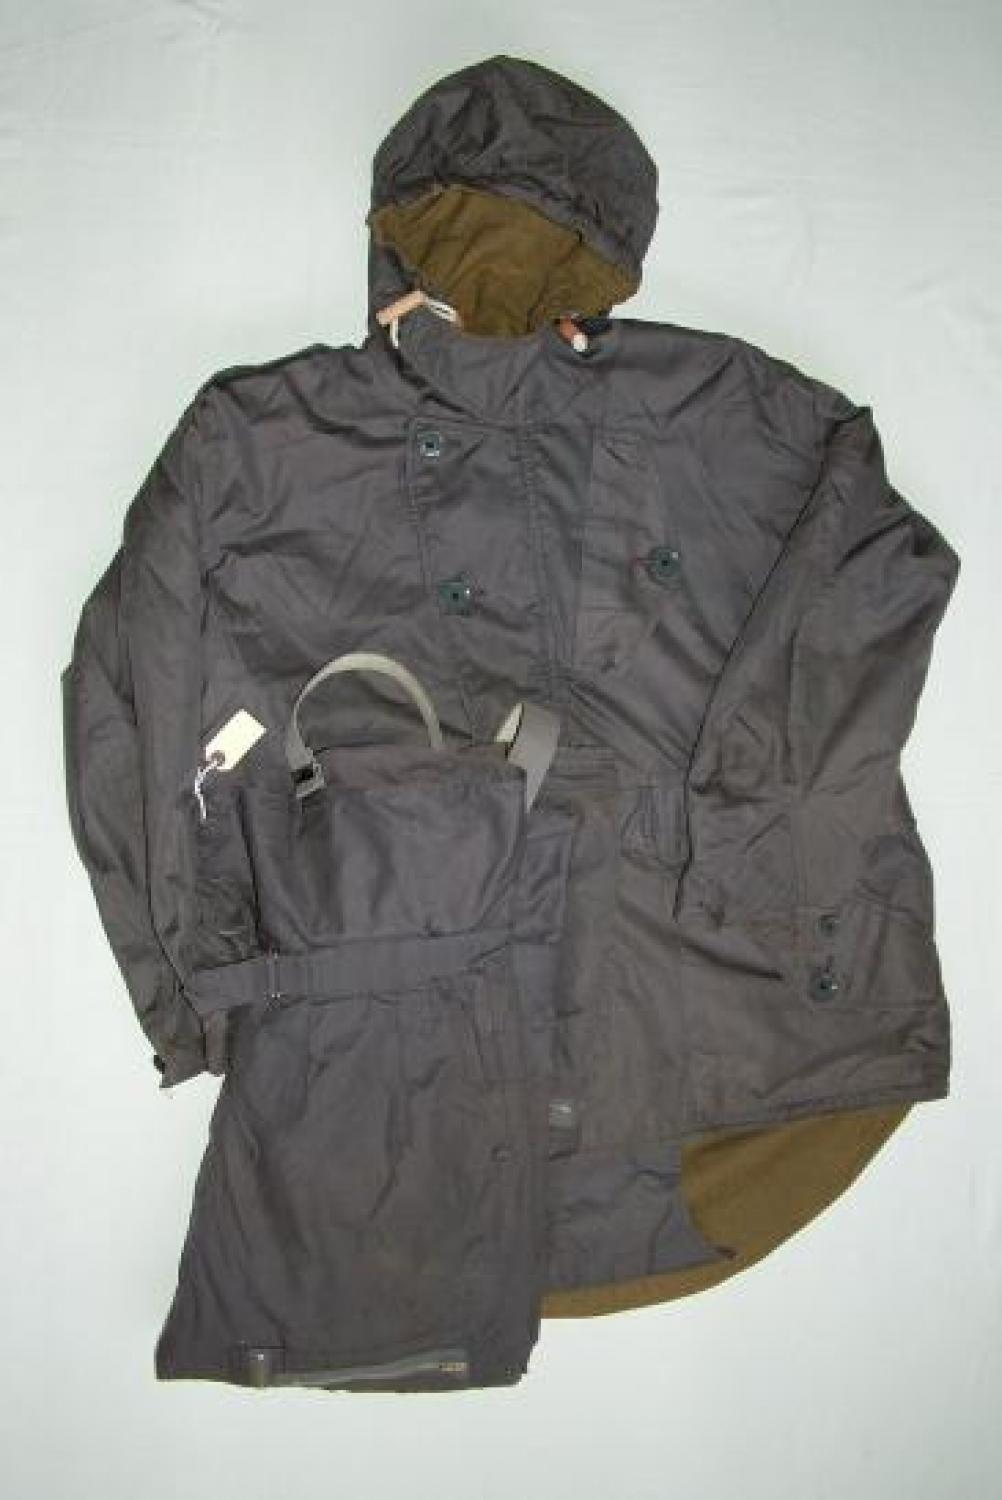 RAF Overall, Flying, Coldweather, MK.1 in